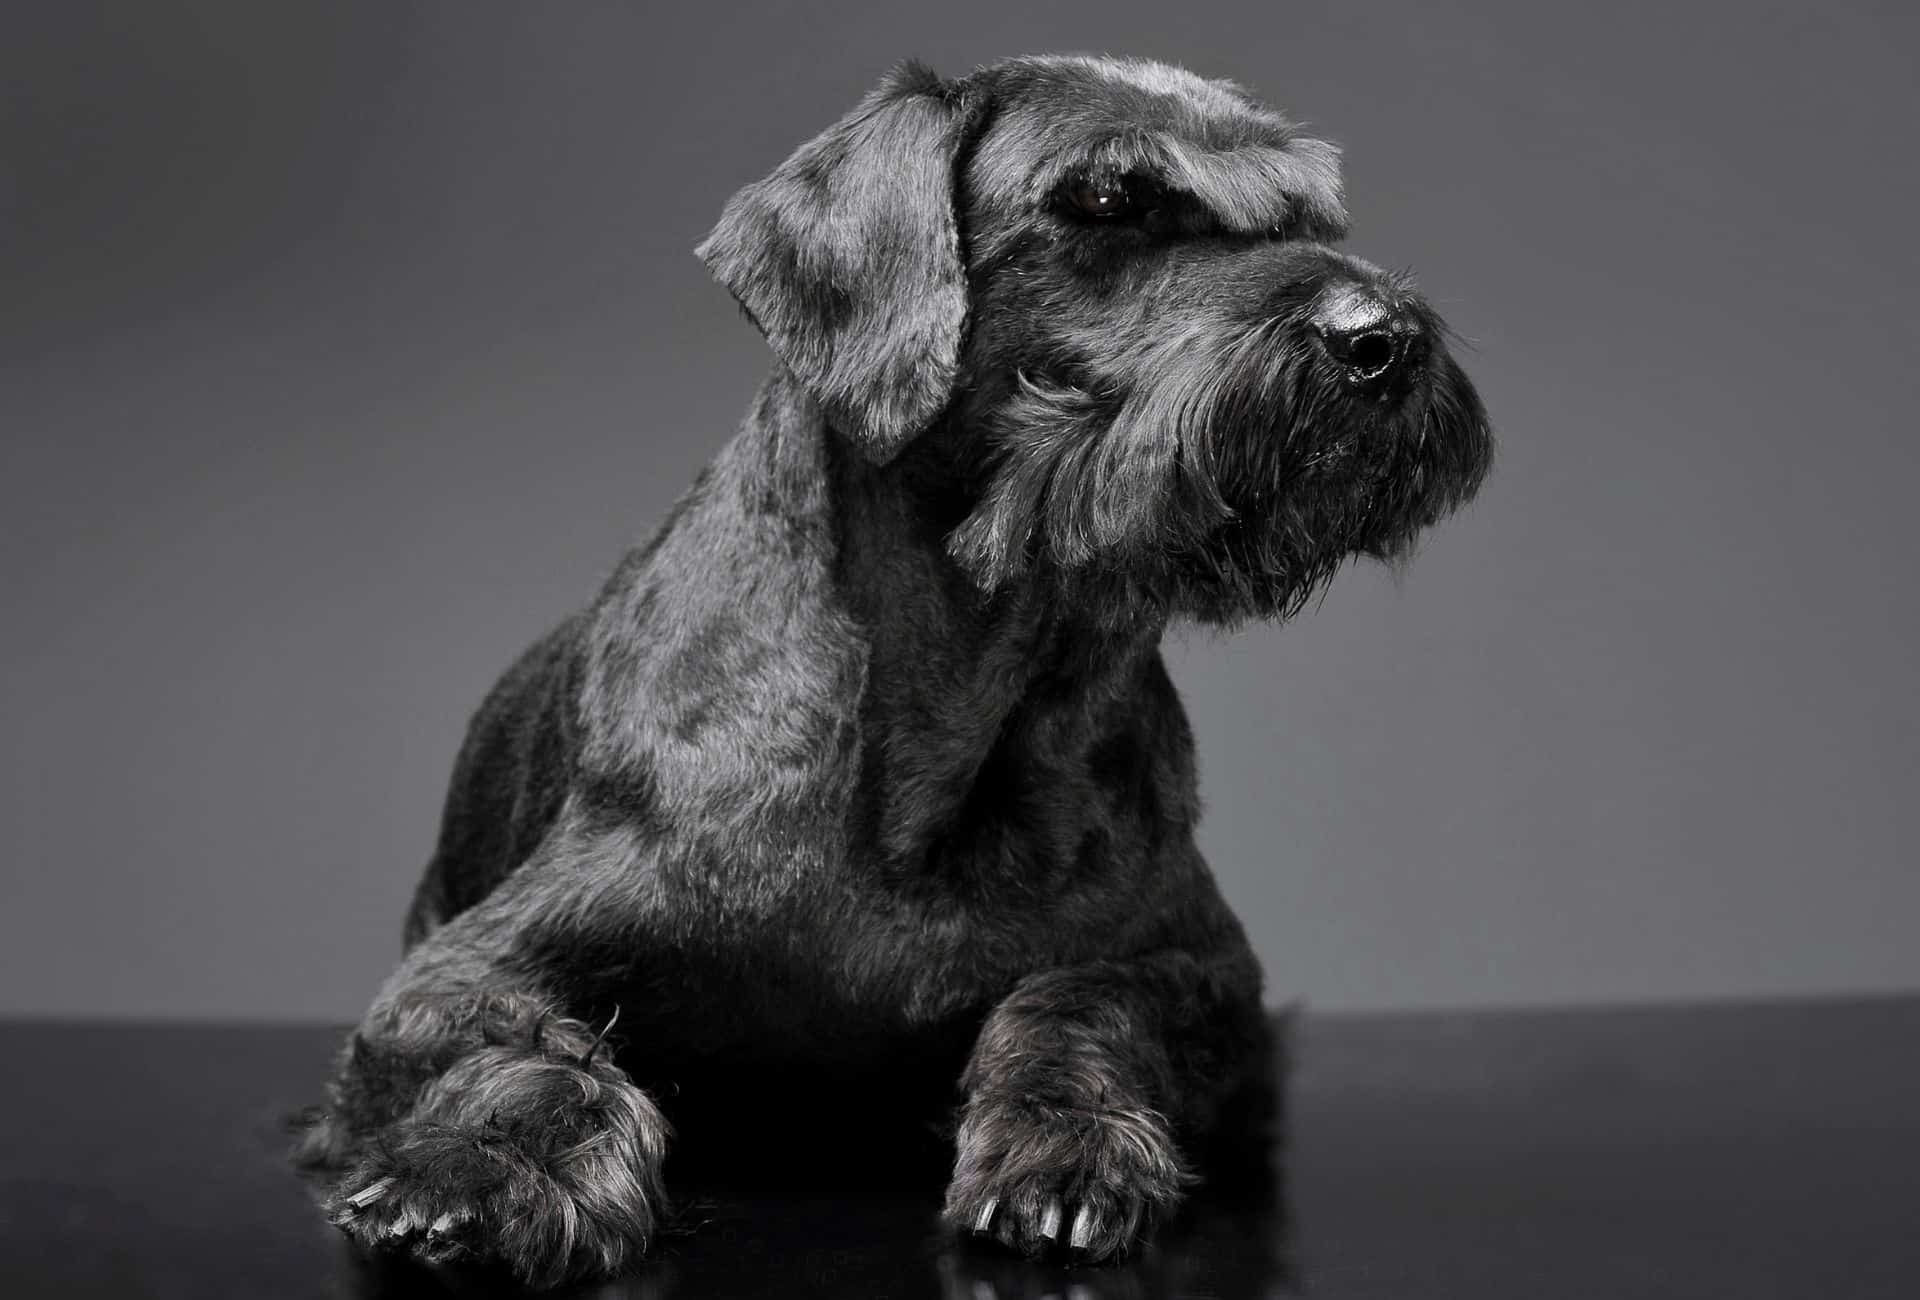 Giant Schnauzer with long fur around the snout and paws.